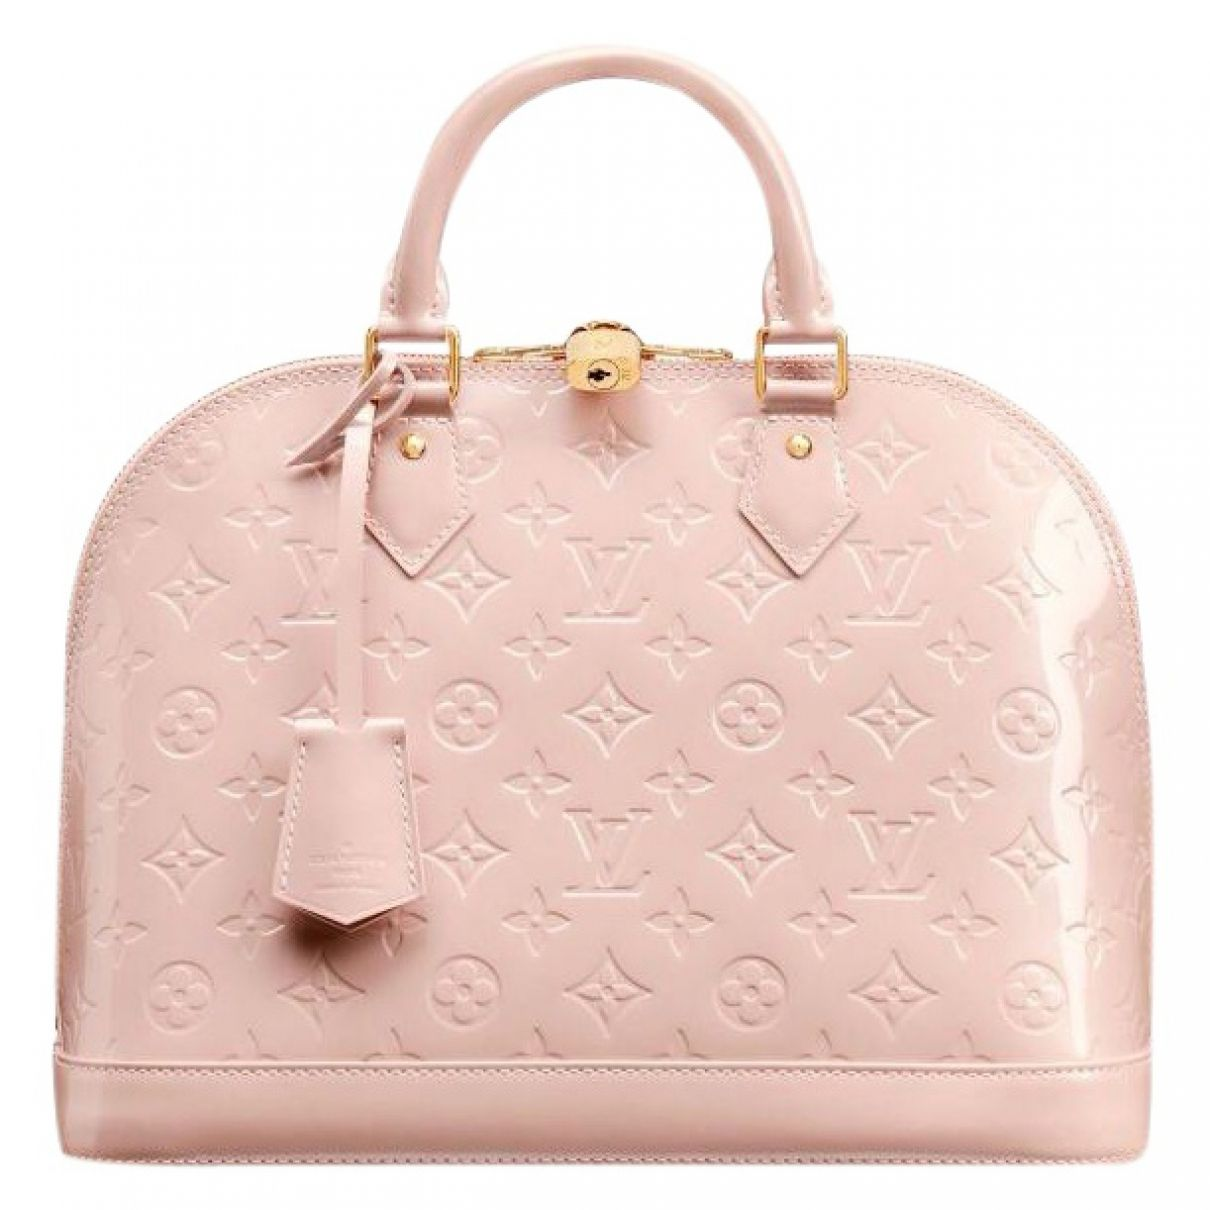 0e28e4502101 Louis Vuitton Pink Patent leather Handbag Alma